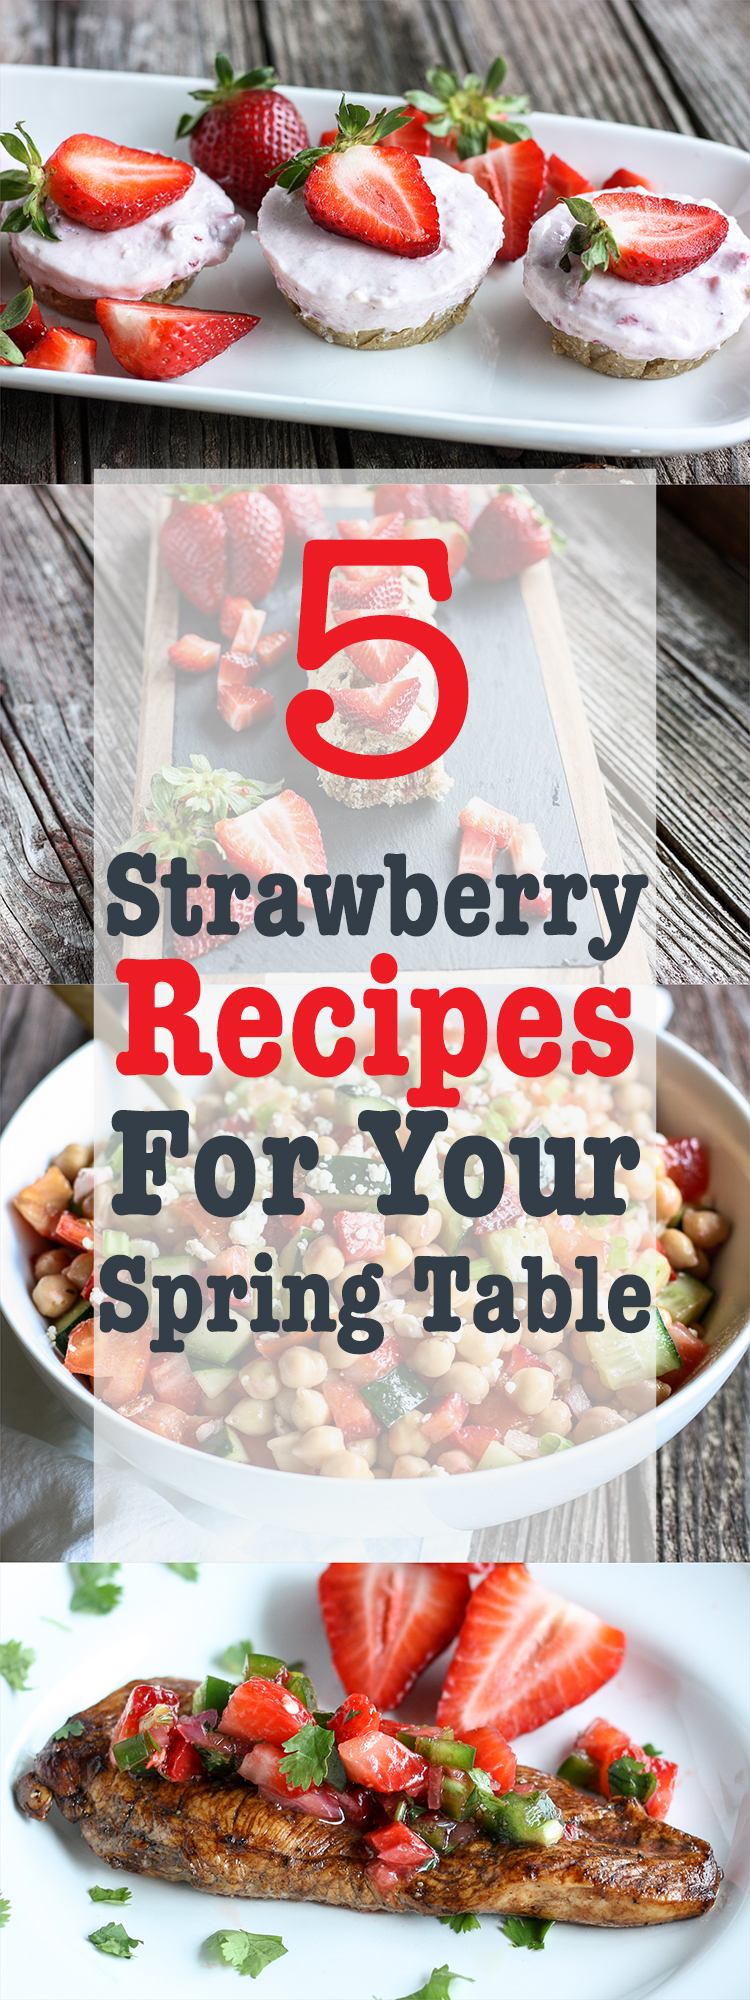 5 Strawberry Recipes for your Spring Table!